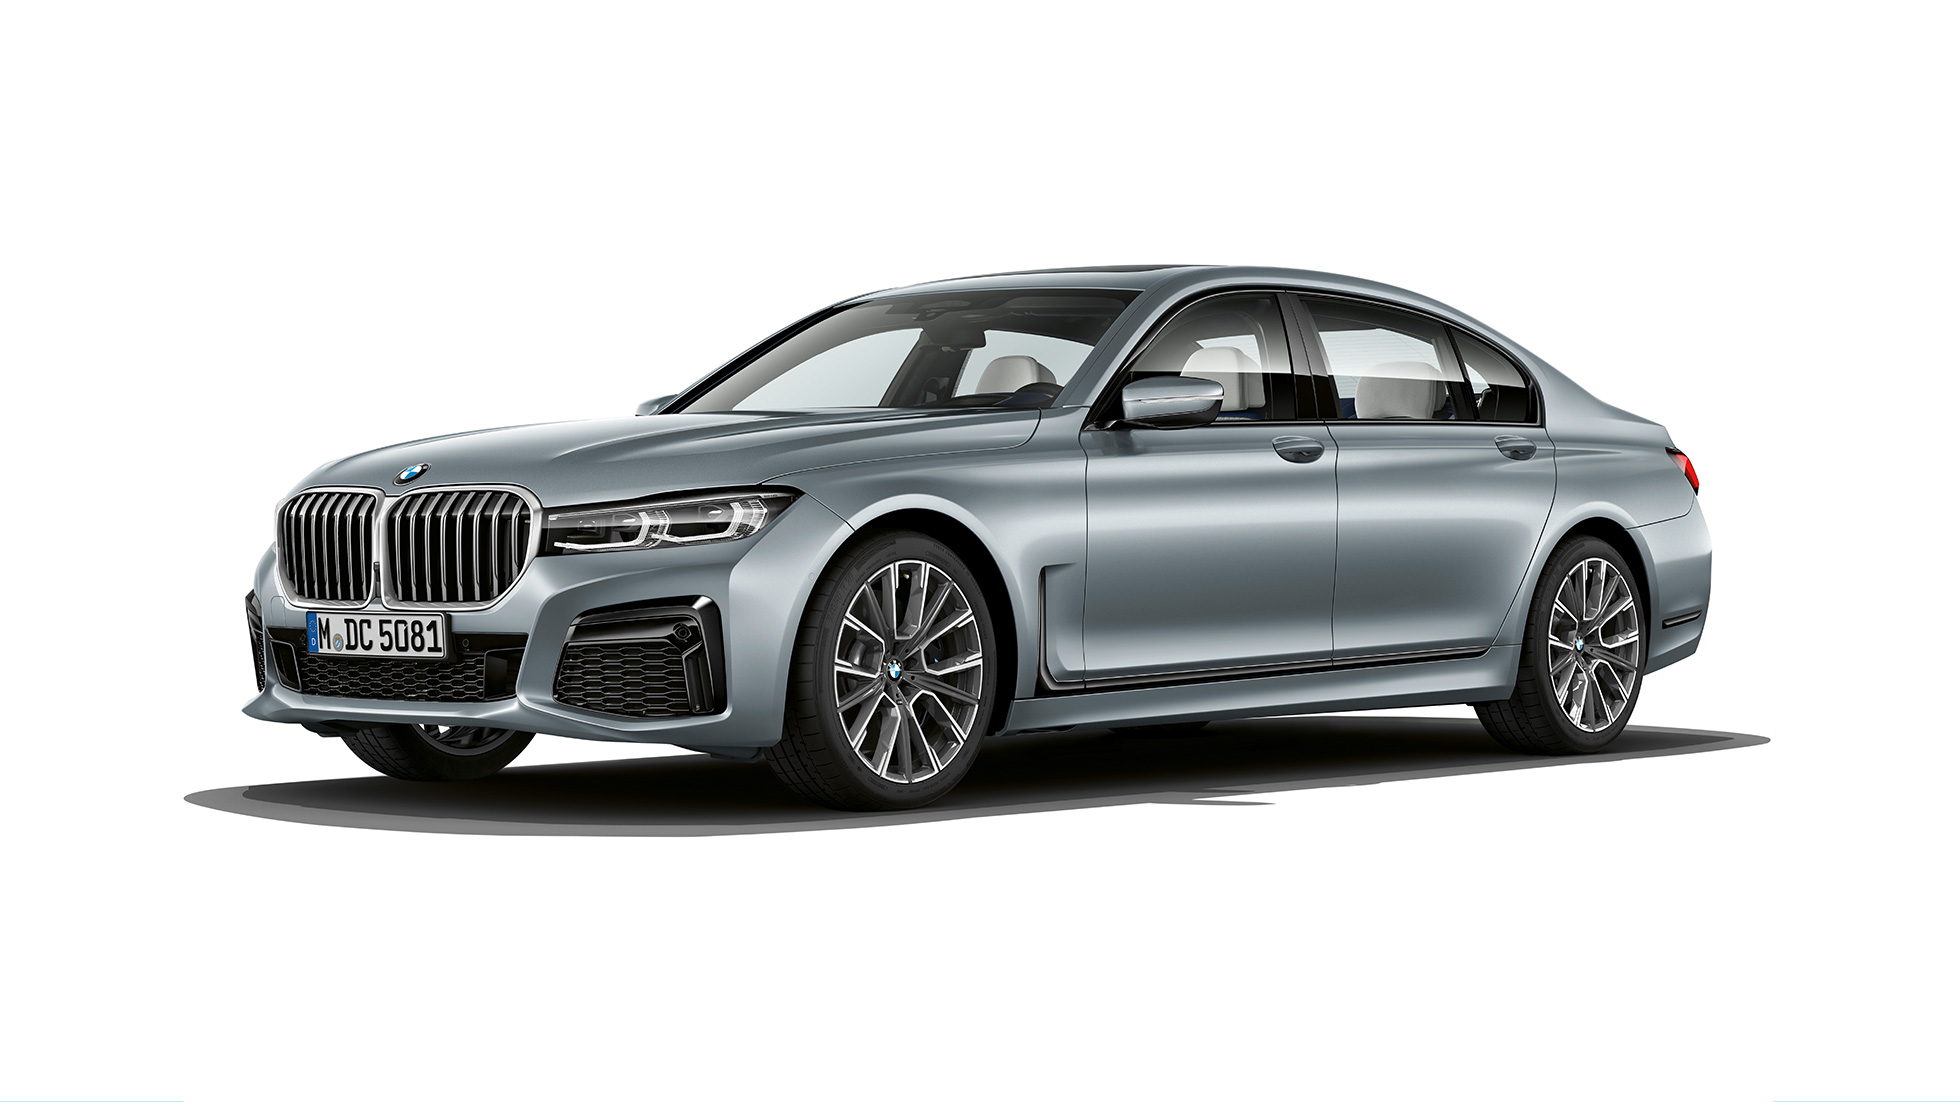 Grey BMW 7 Series Sedan M Sport package in three-quarter front view G11